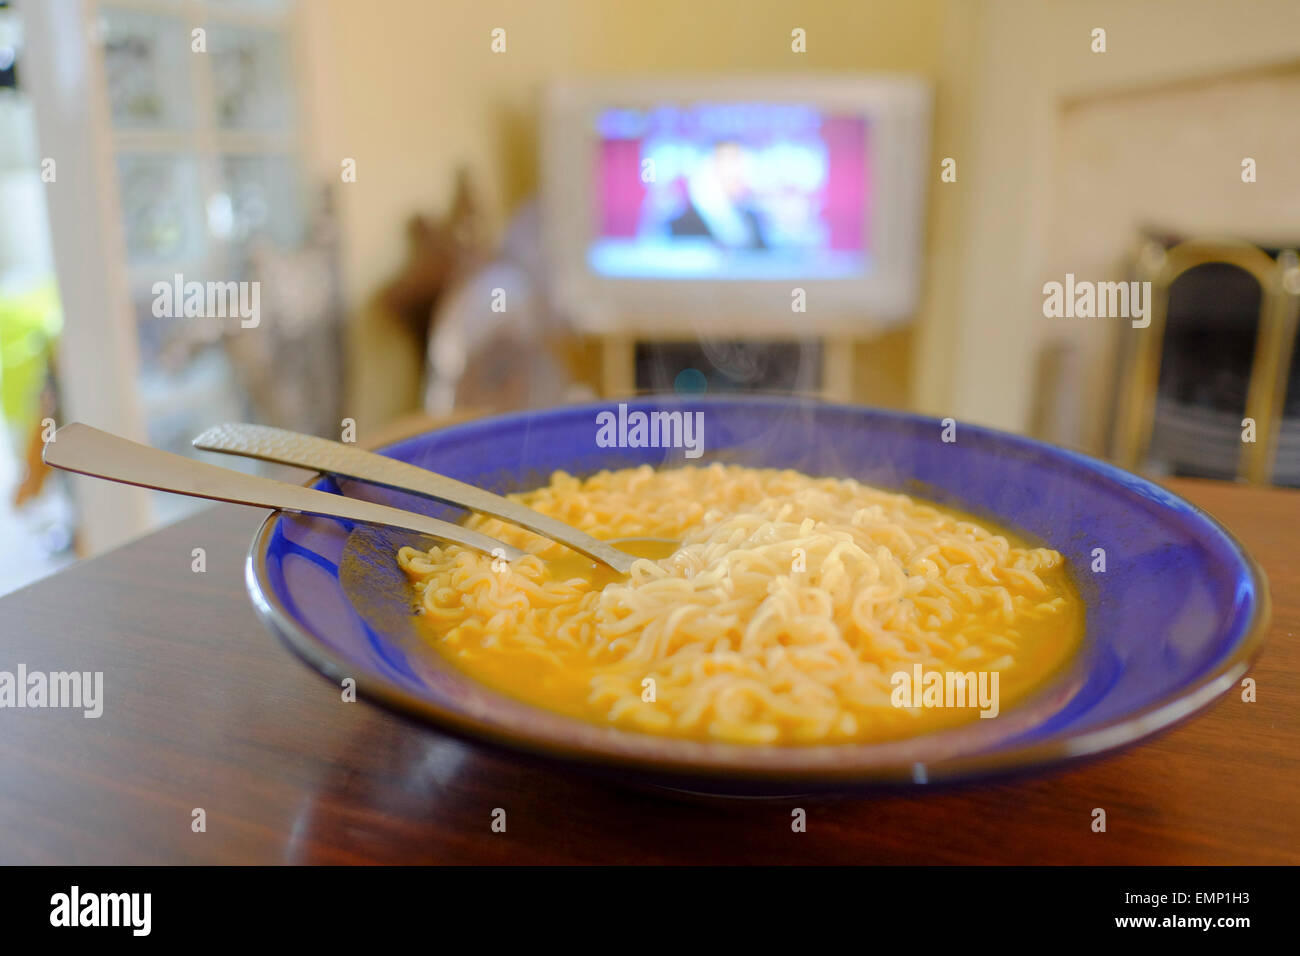 Eating noodles in front of television - Stock Image